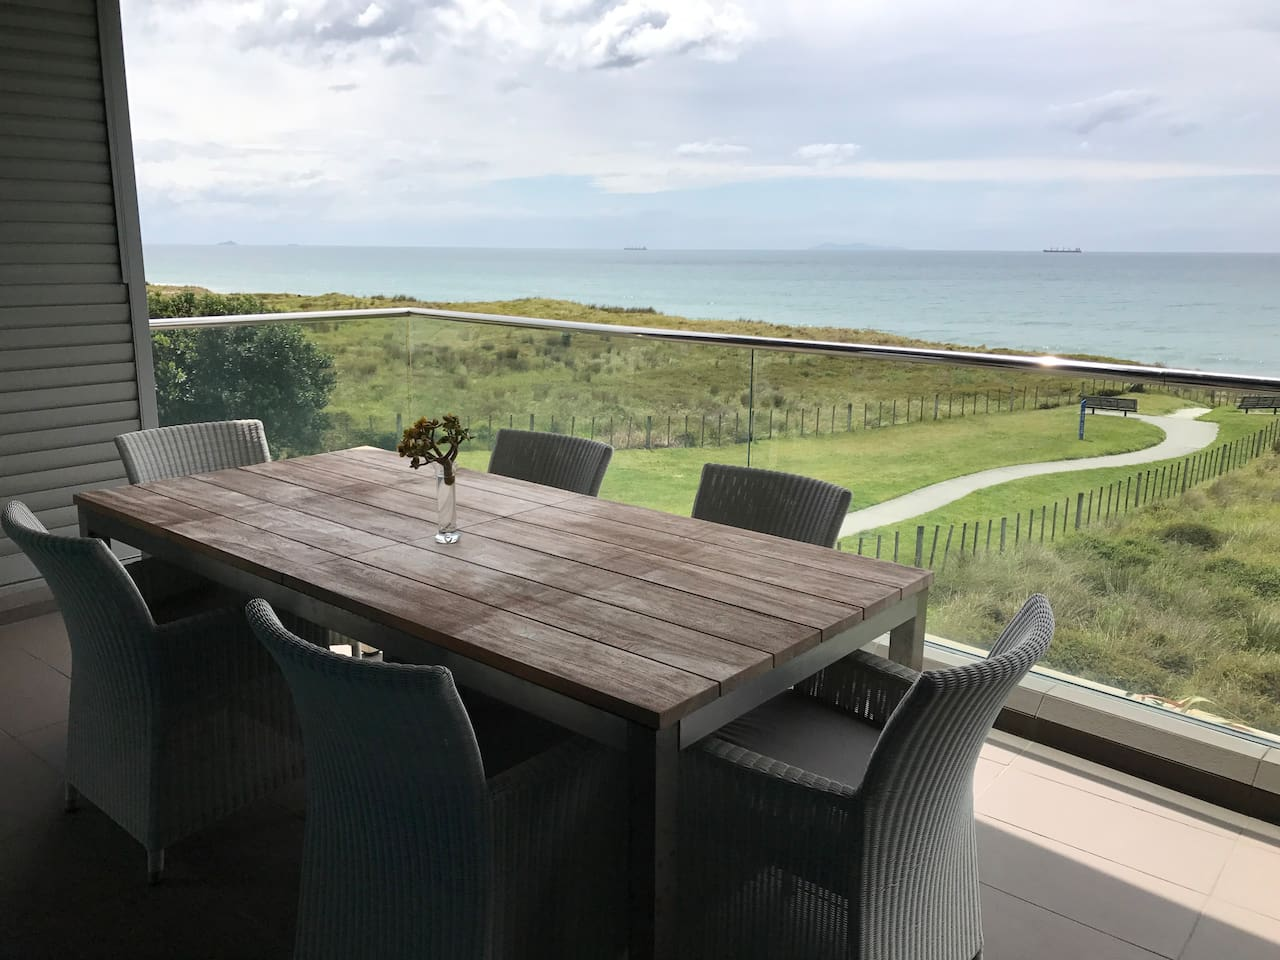 Deck to enjoy the view